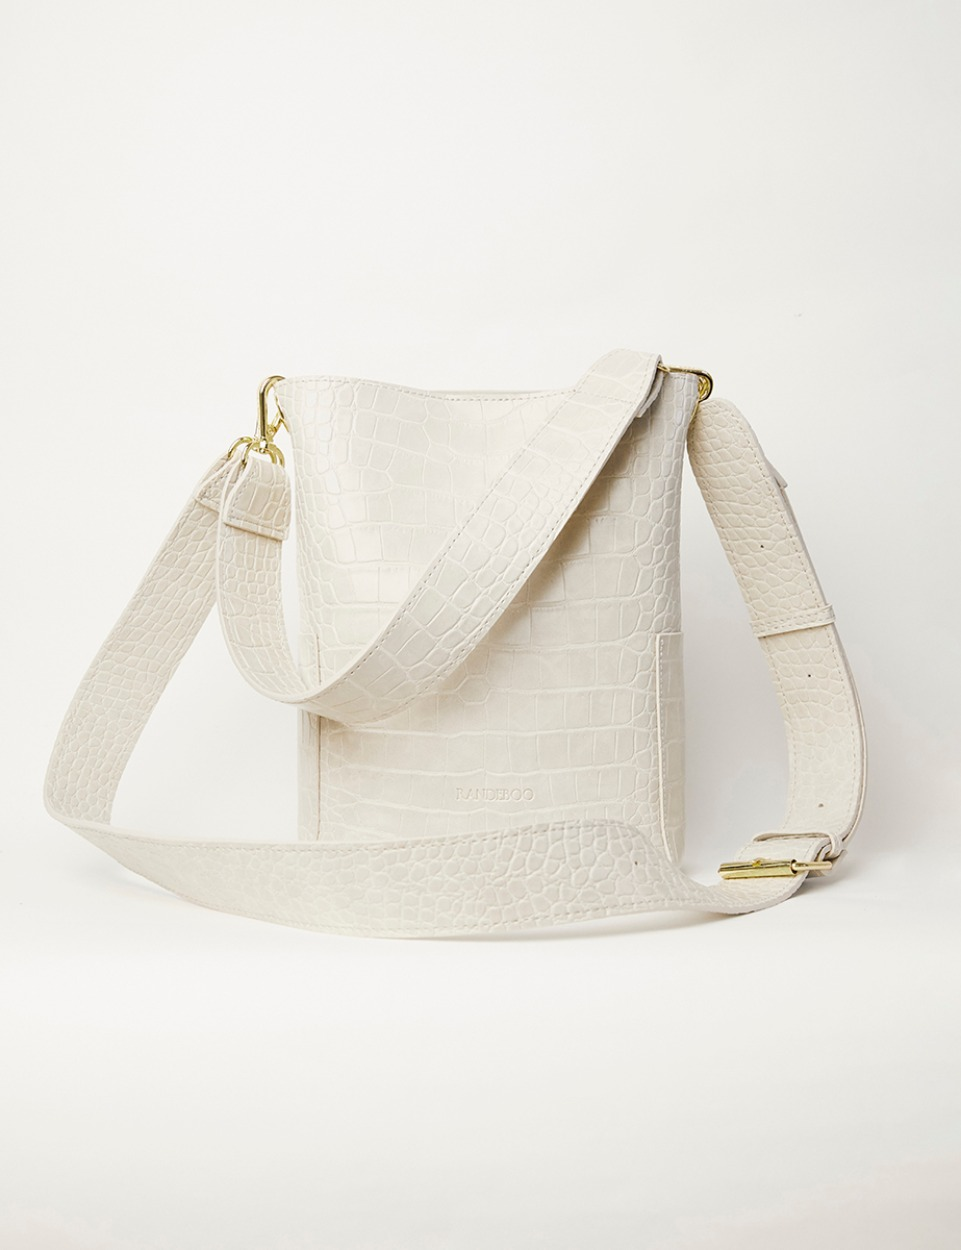 RB croco bucket bag (ivory)